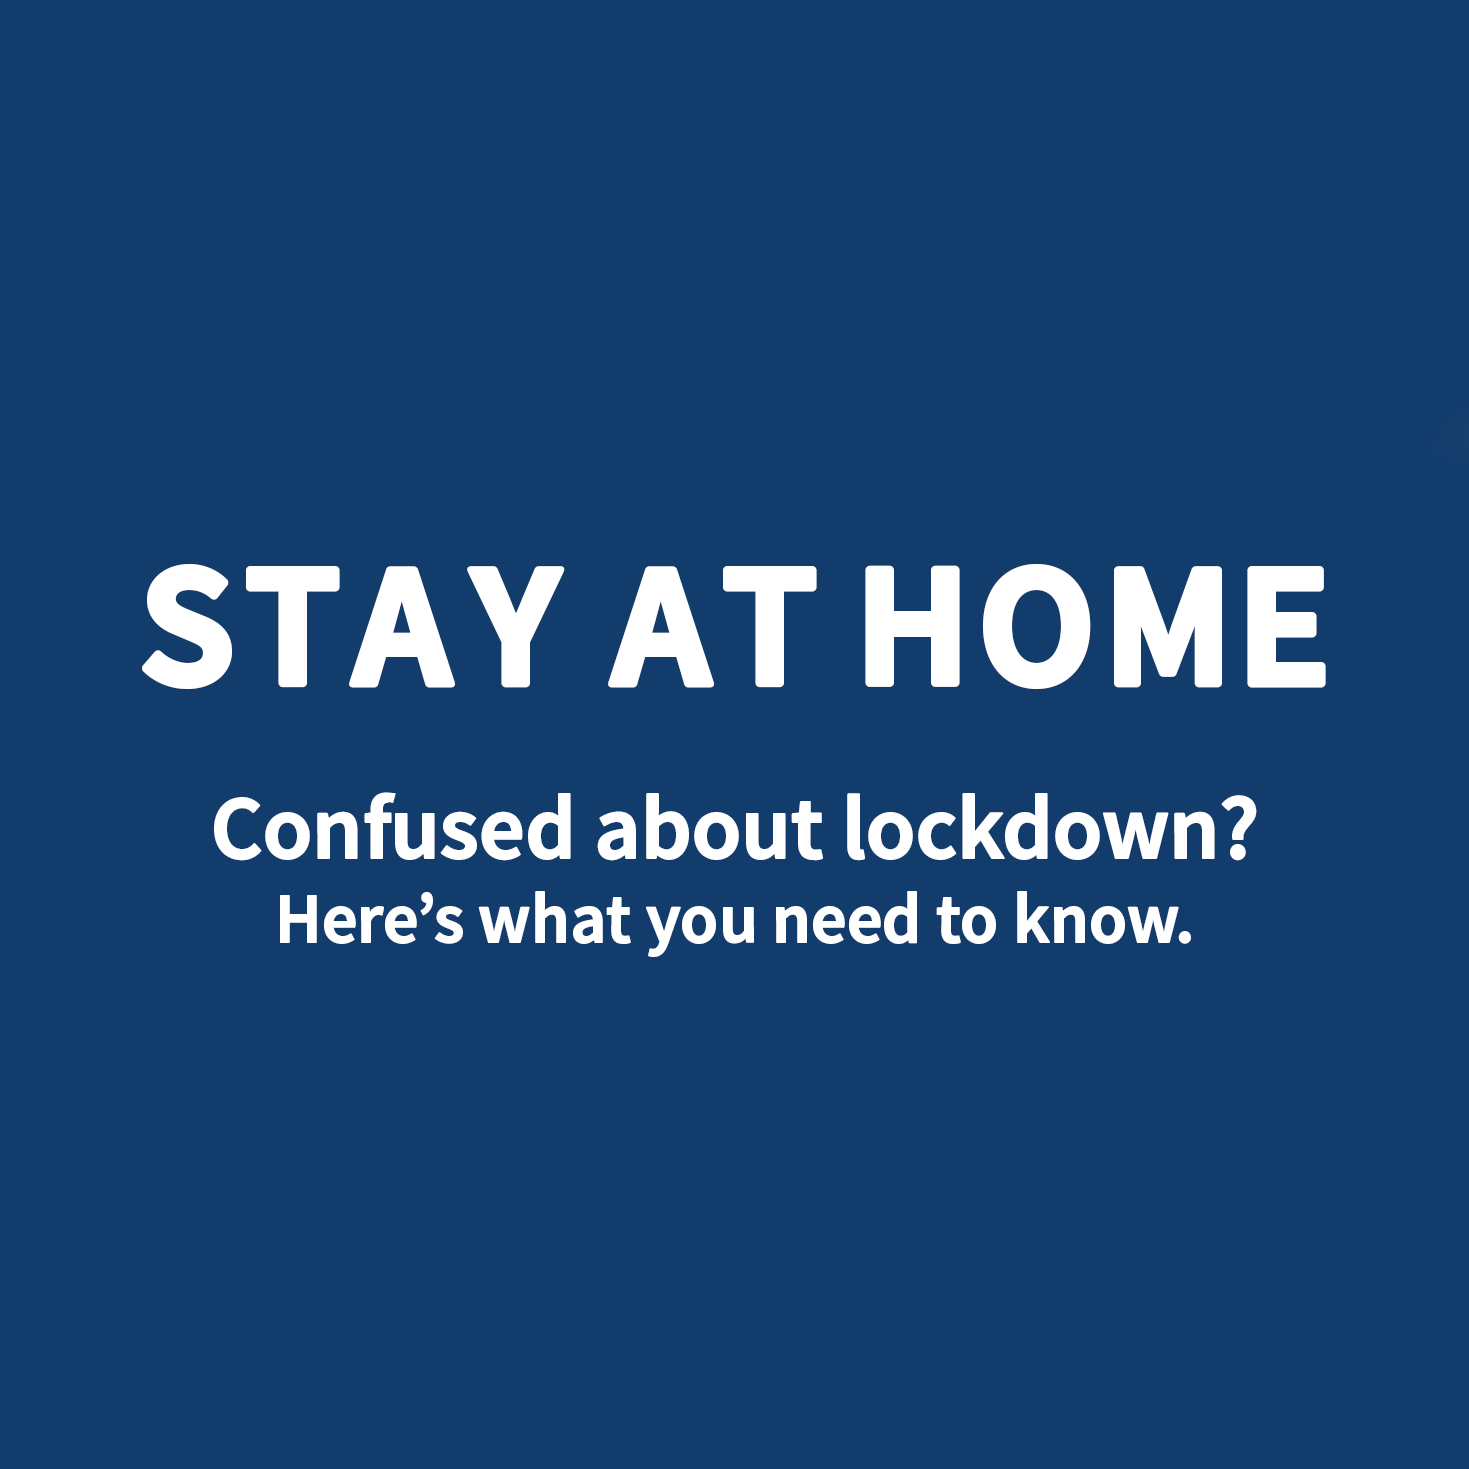 Confused About Lockdown? Here's What You Need To Know